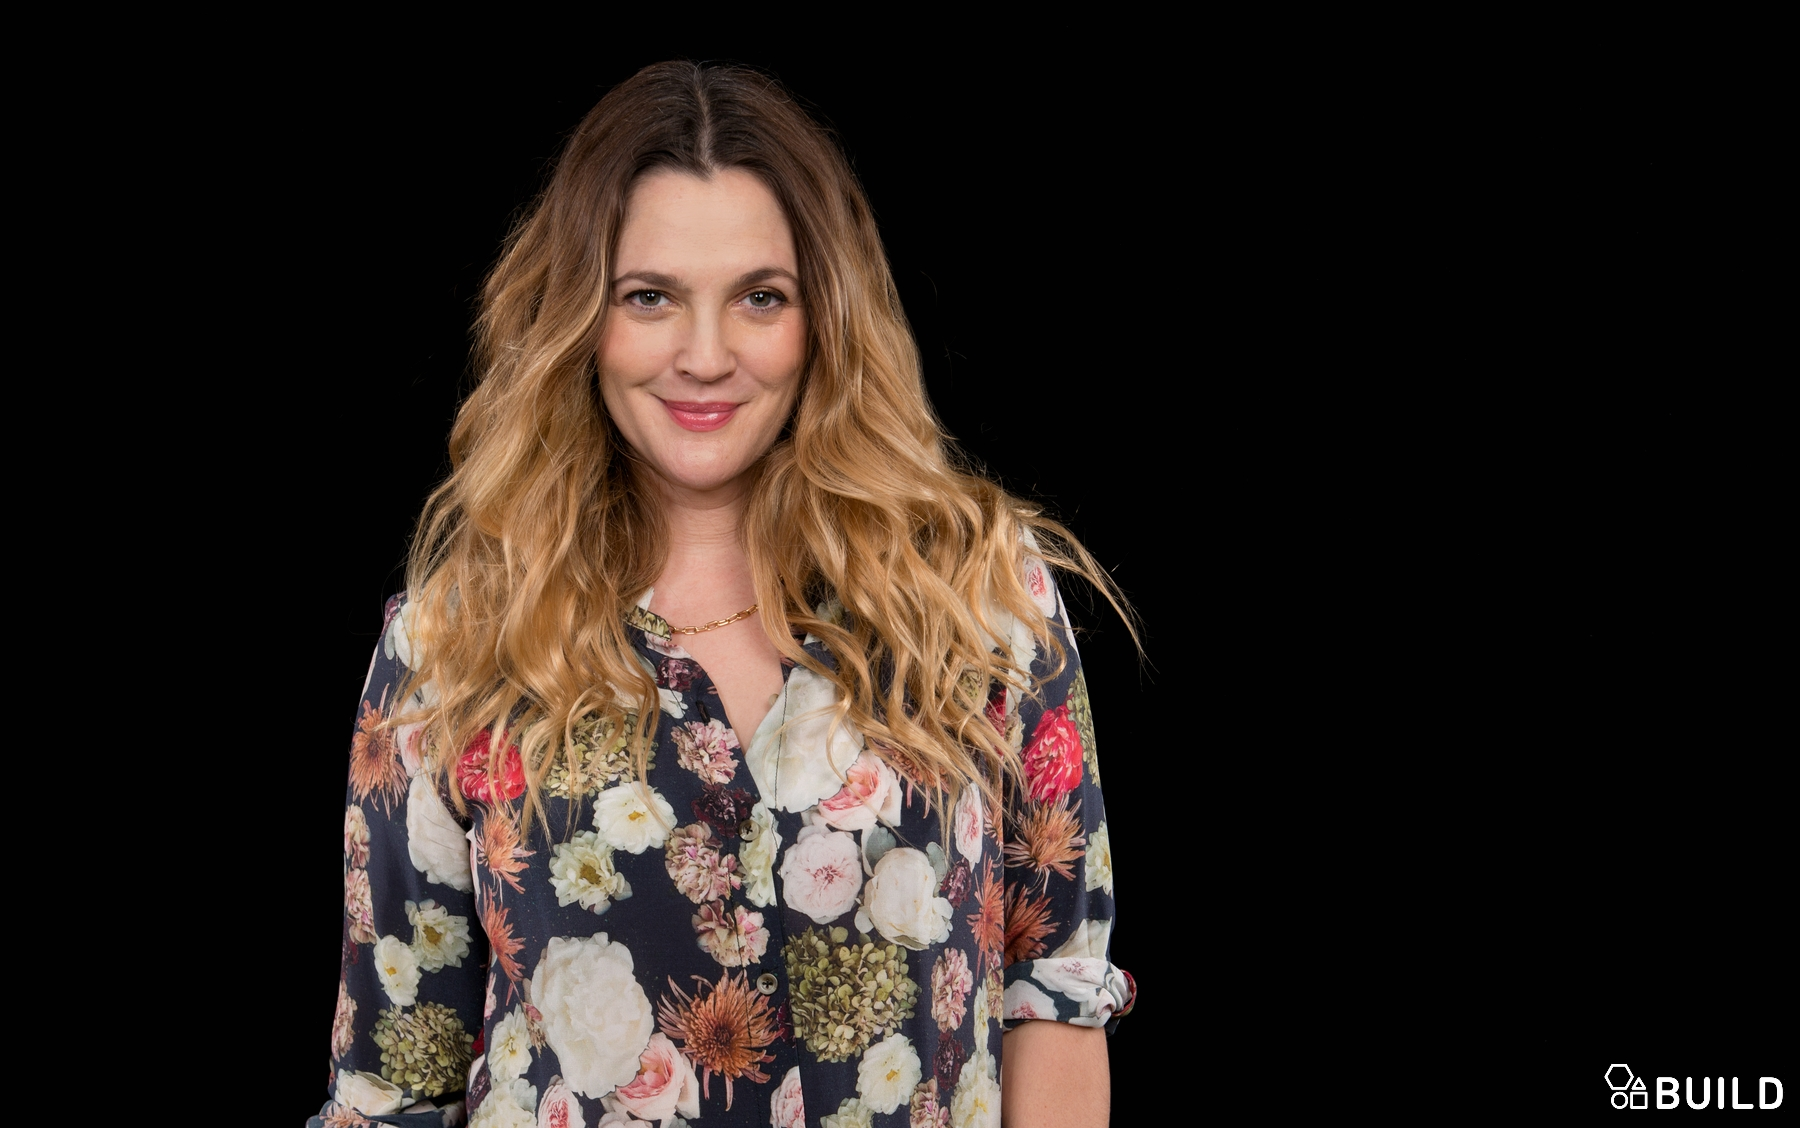 Drew Barrymore visits AOL Hq for Build on December 17, 2015 in New York. Photos by Noam Galai